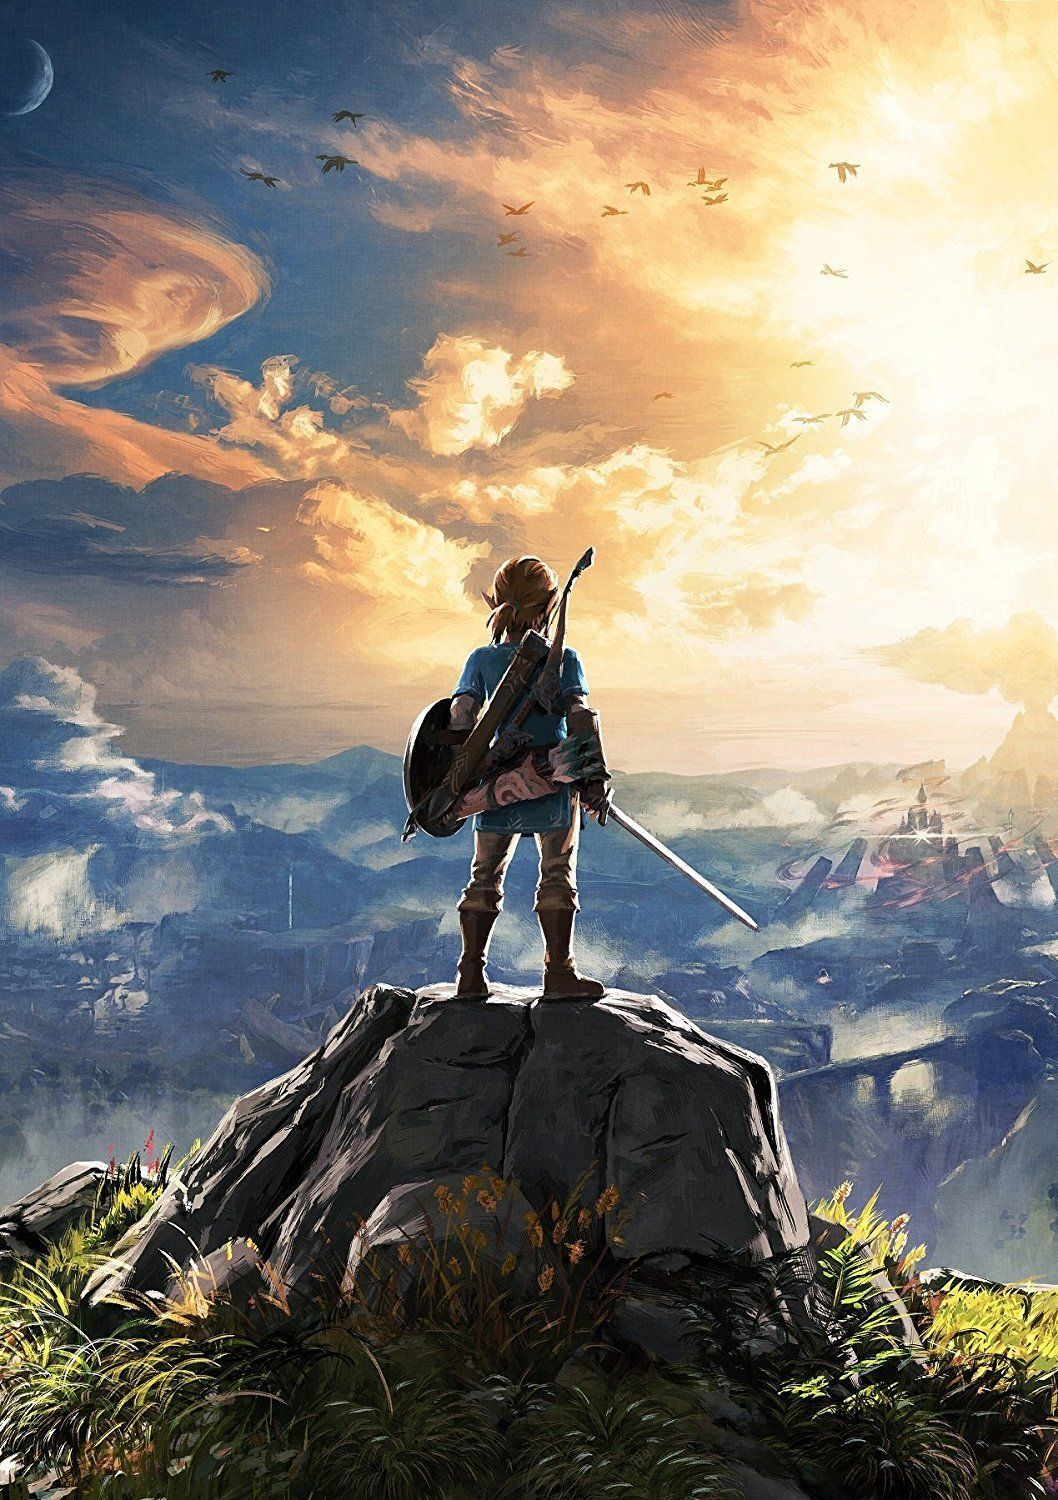 Königliche Küche Zelda The Legend Of Zelda Breath Of The Wild Poster Amazon De